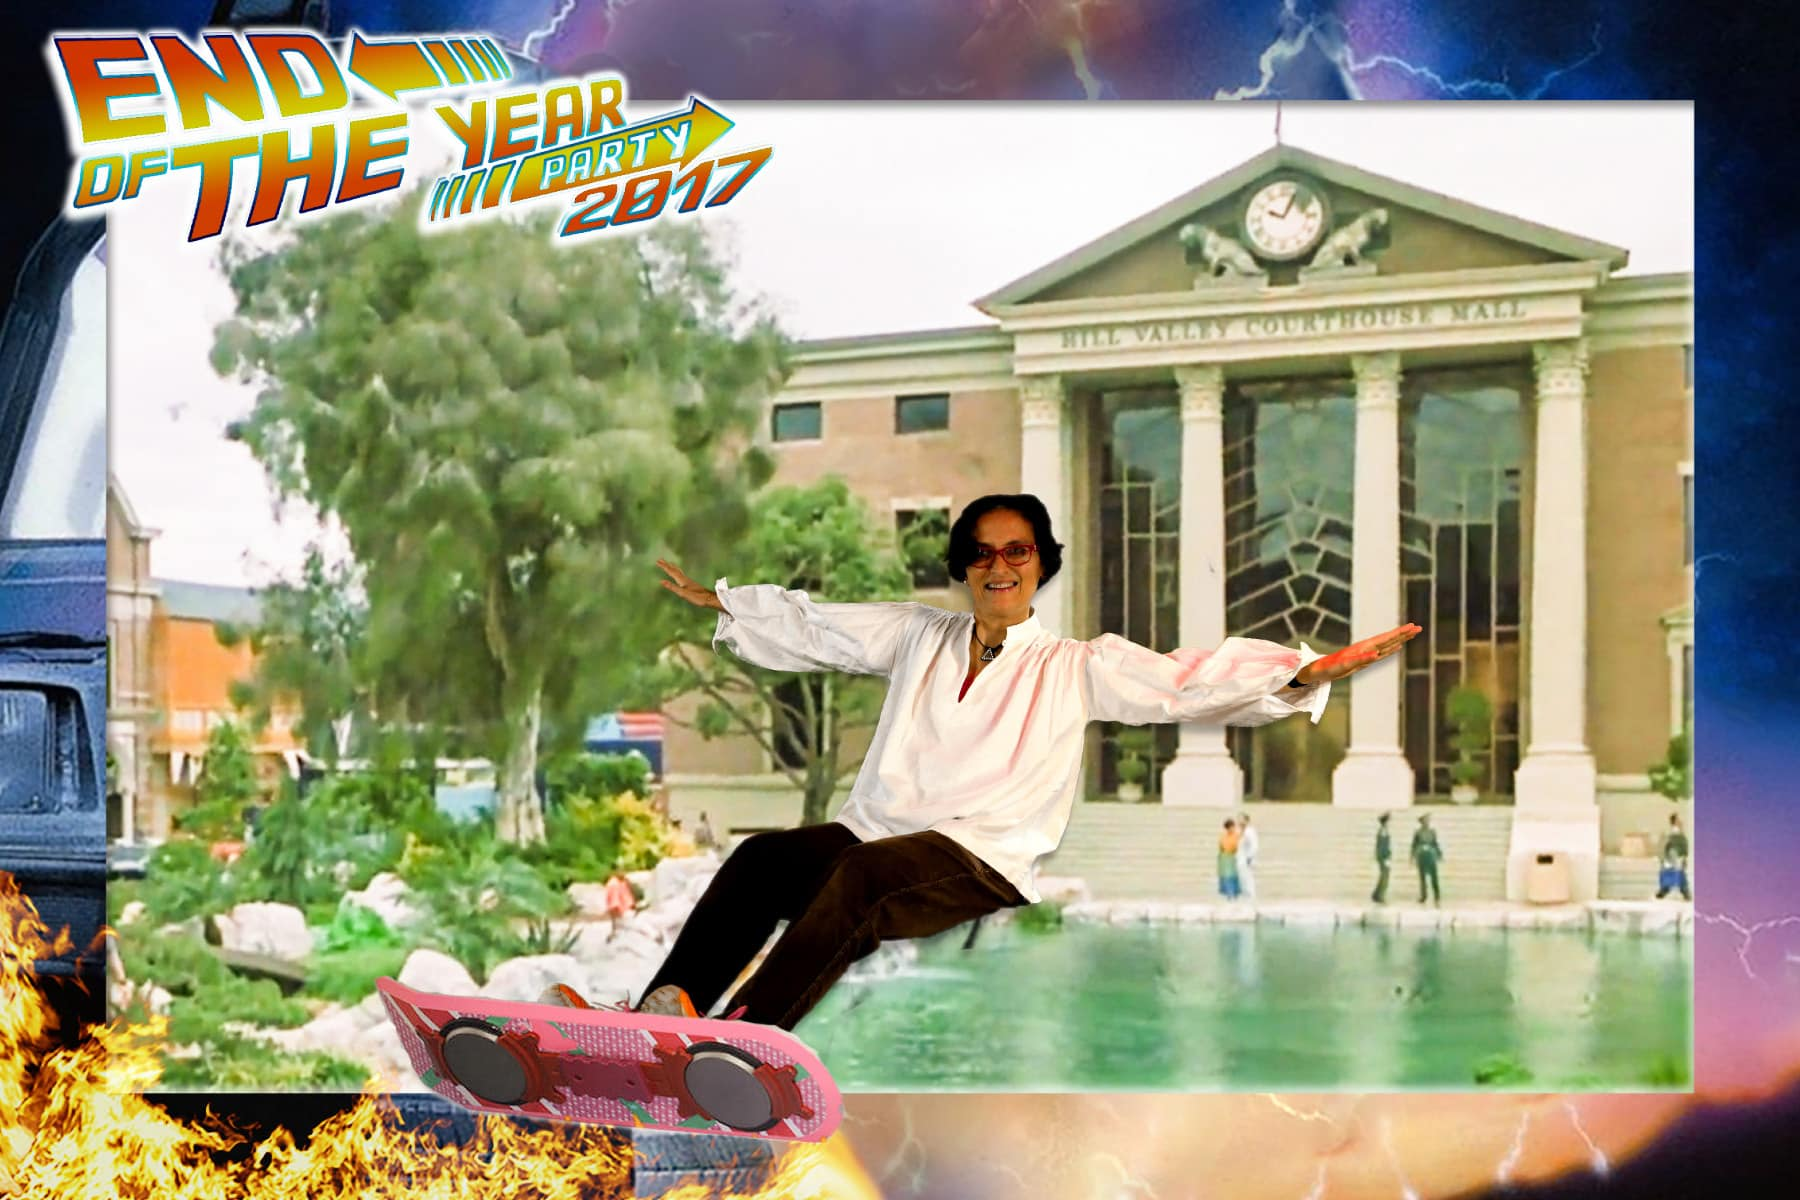 Greenscreen foto met Back to the future hoverboard